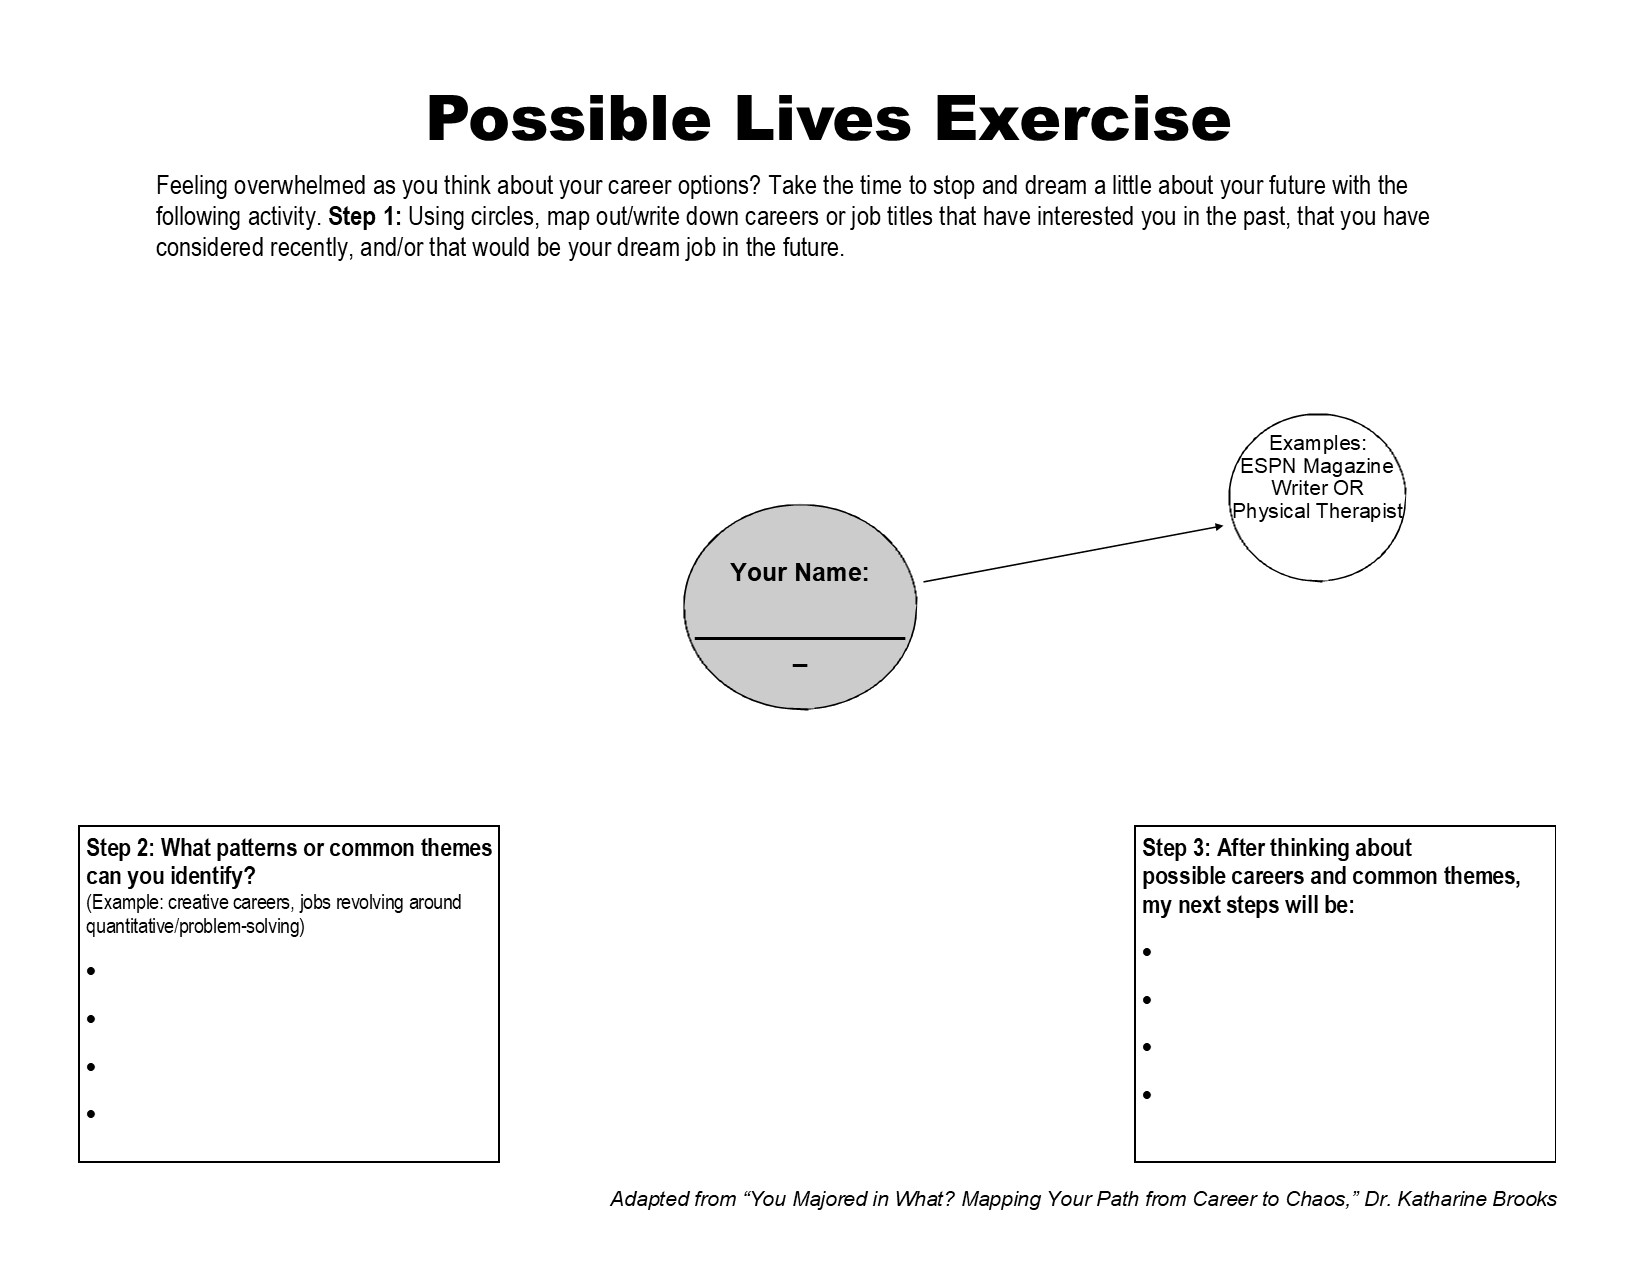 Possible Lives Worksheet image - Your name in the middle circle with possible careers and interests in circles going out from the middle